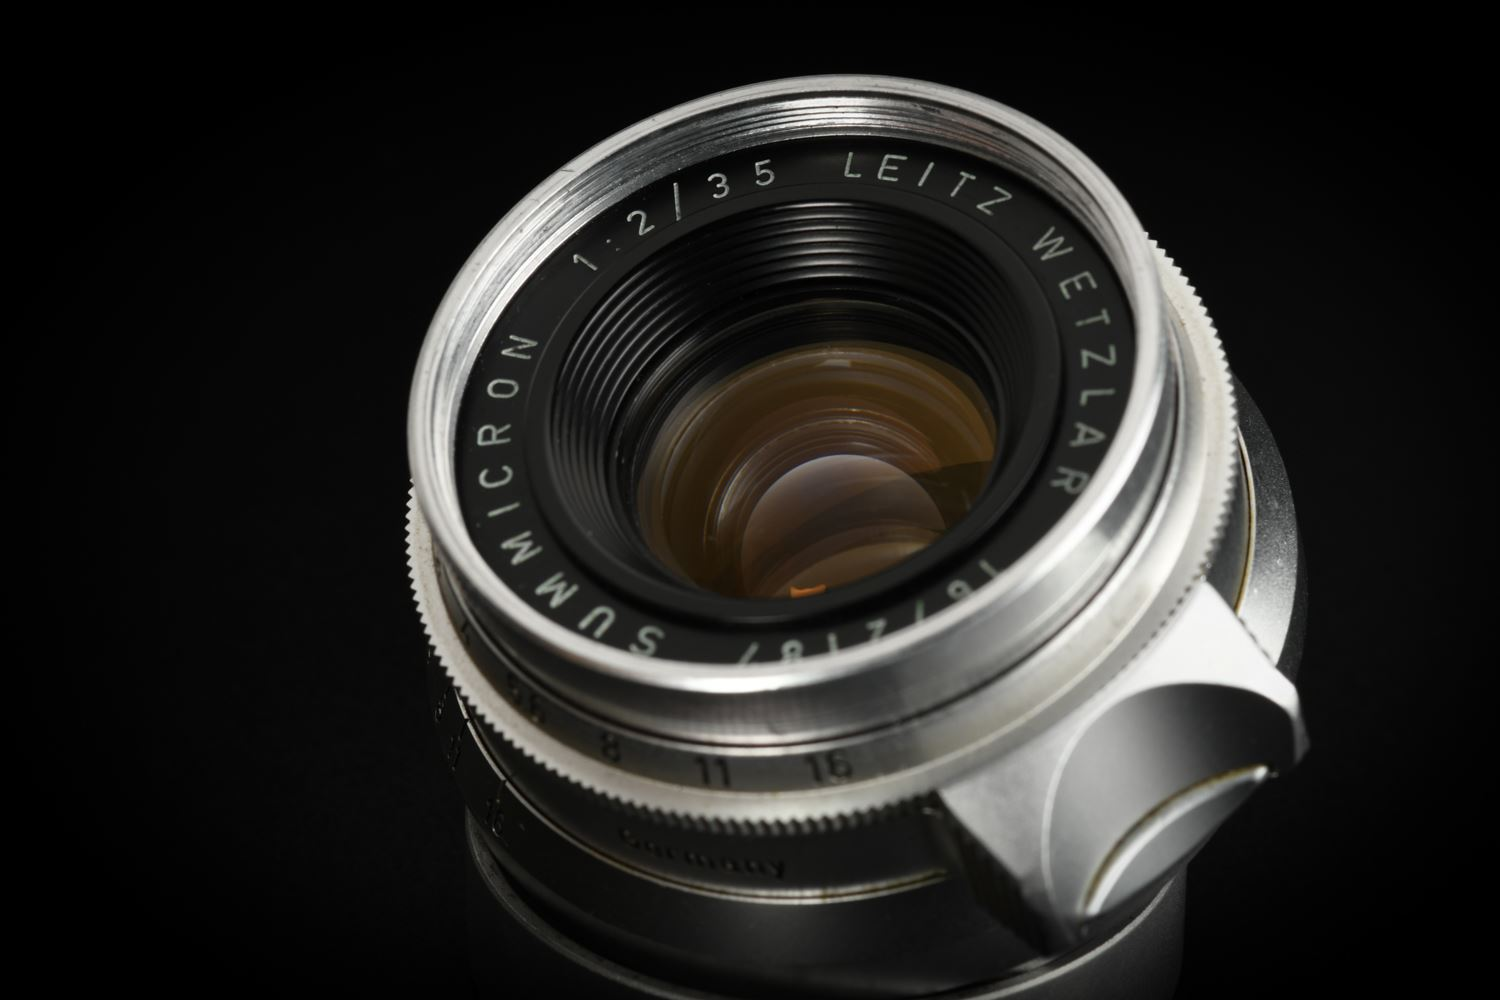 Picture of Leica Summicron 35mm f/2 Ver.1 8-element Germany Screw LTM